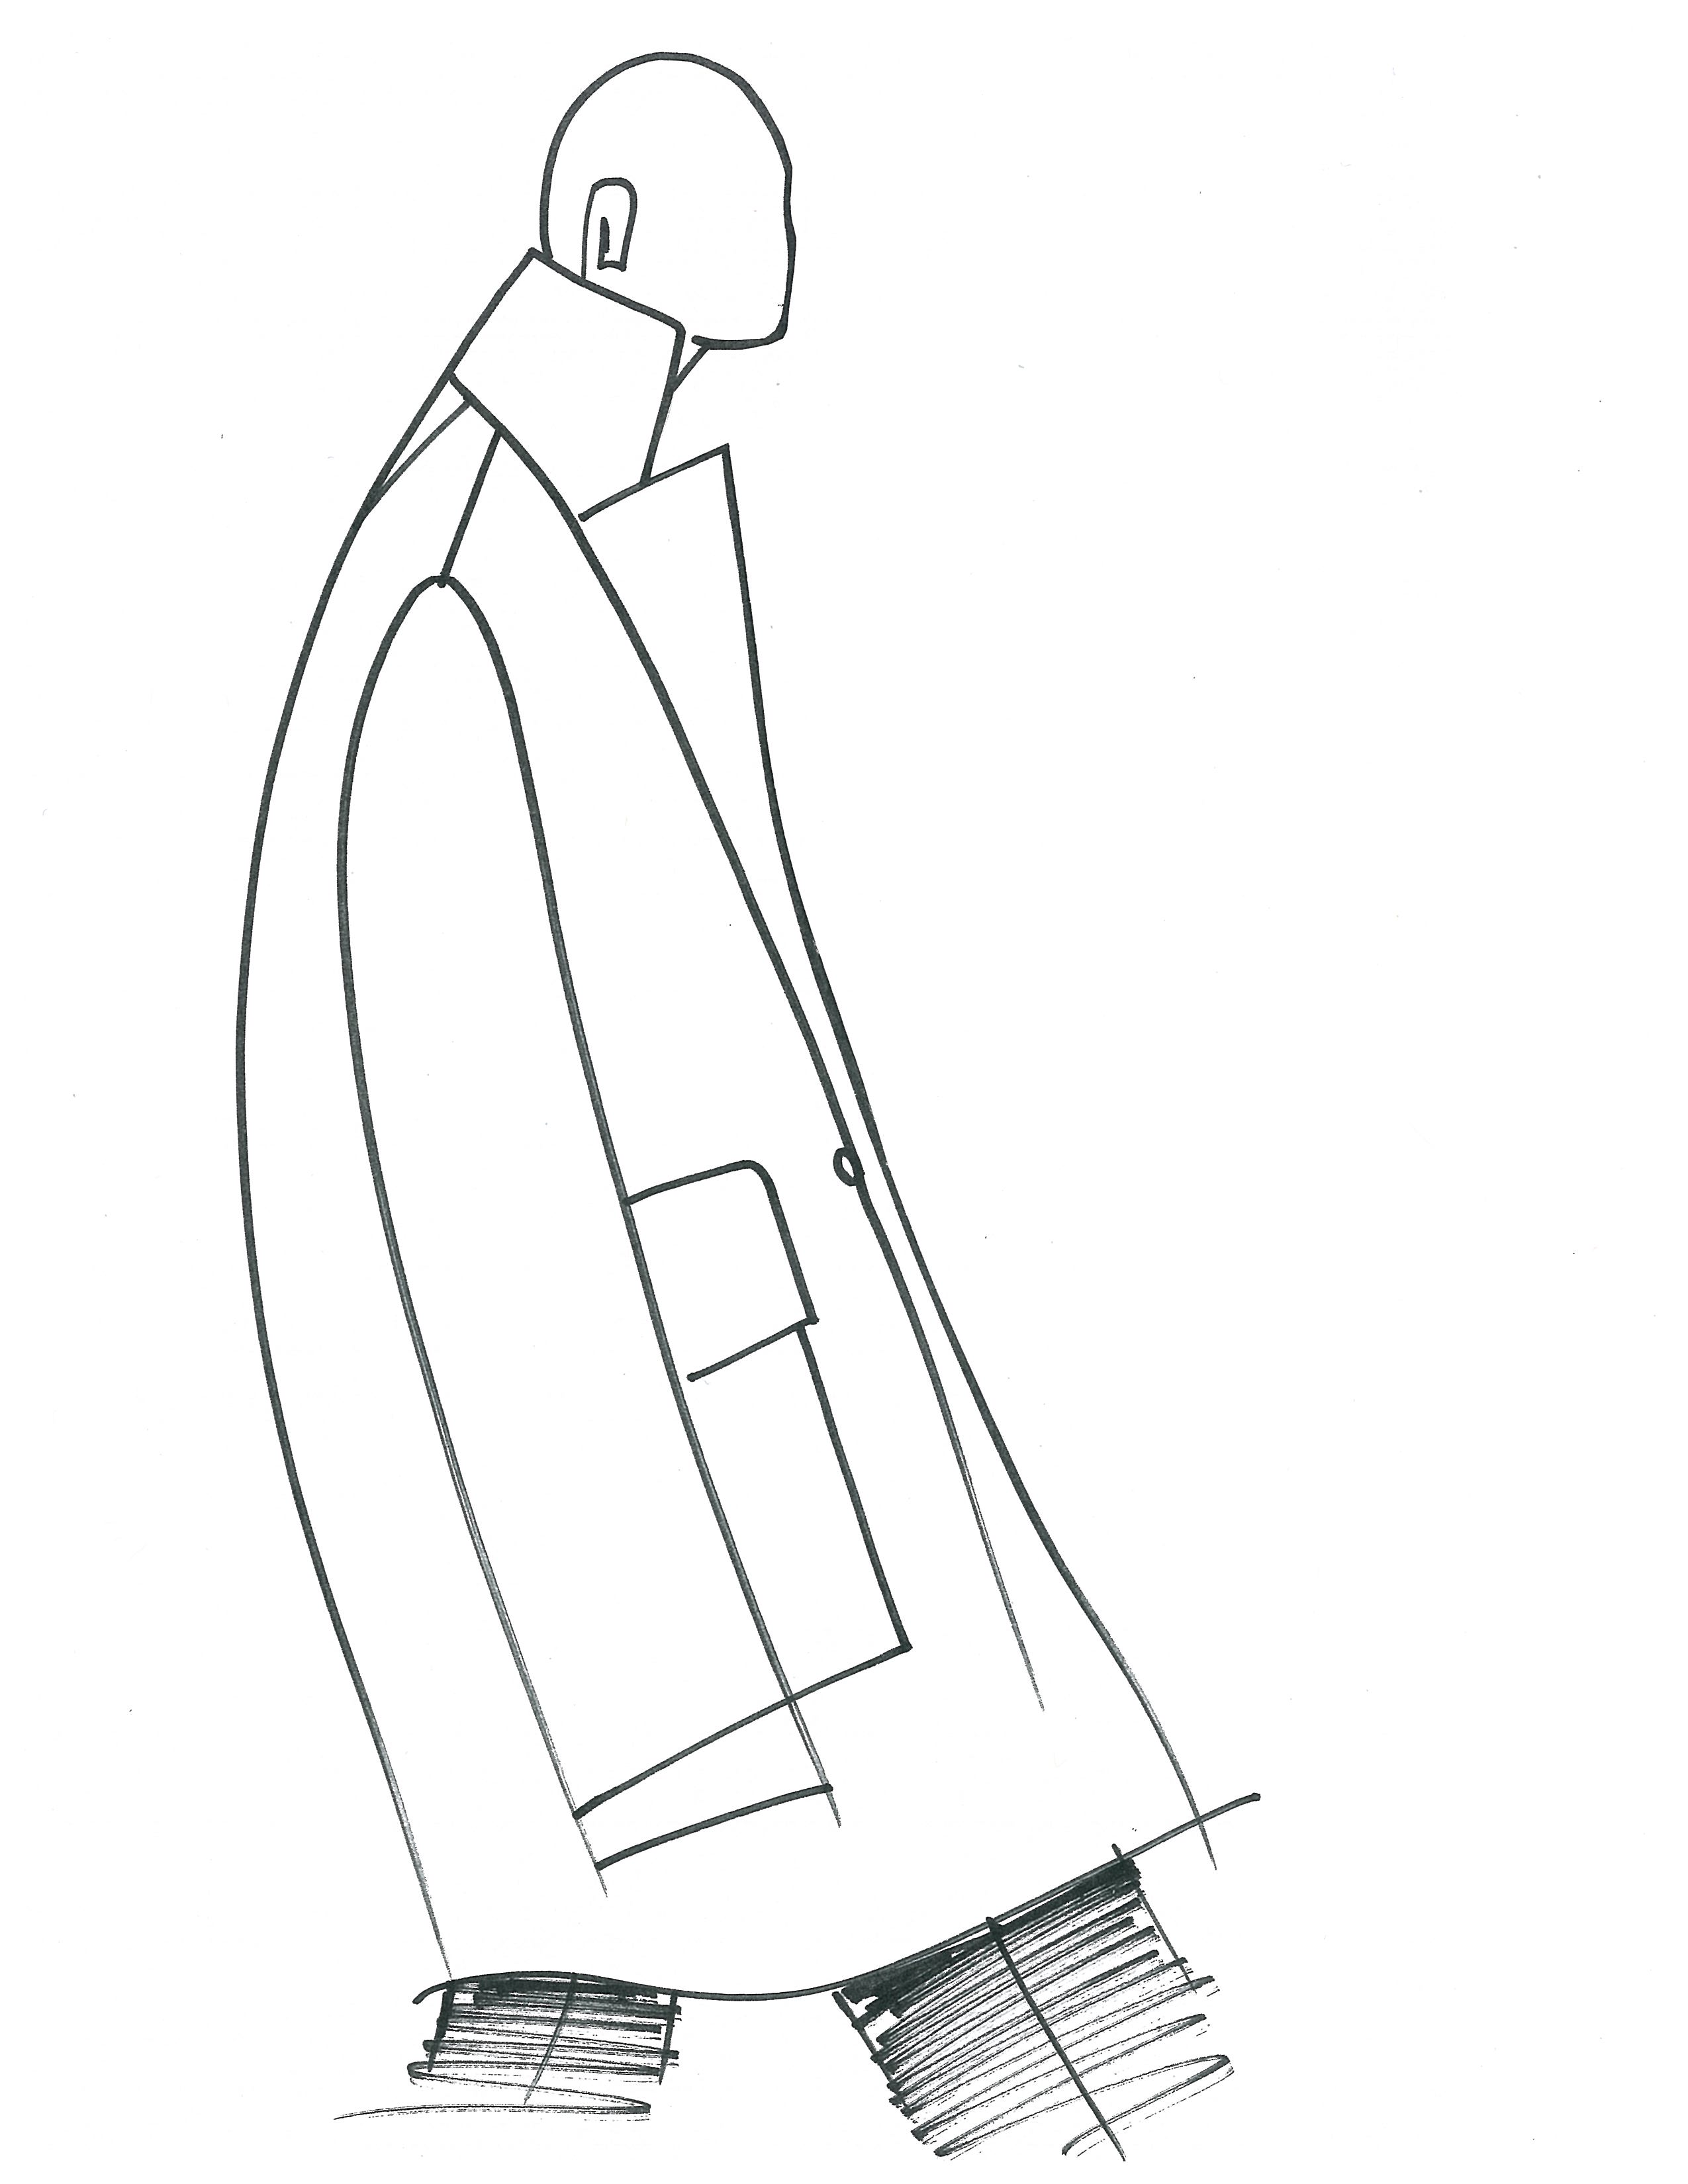 A sketch from the Cedric Charlier men's collection.